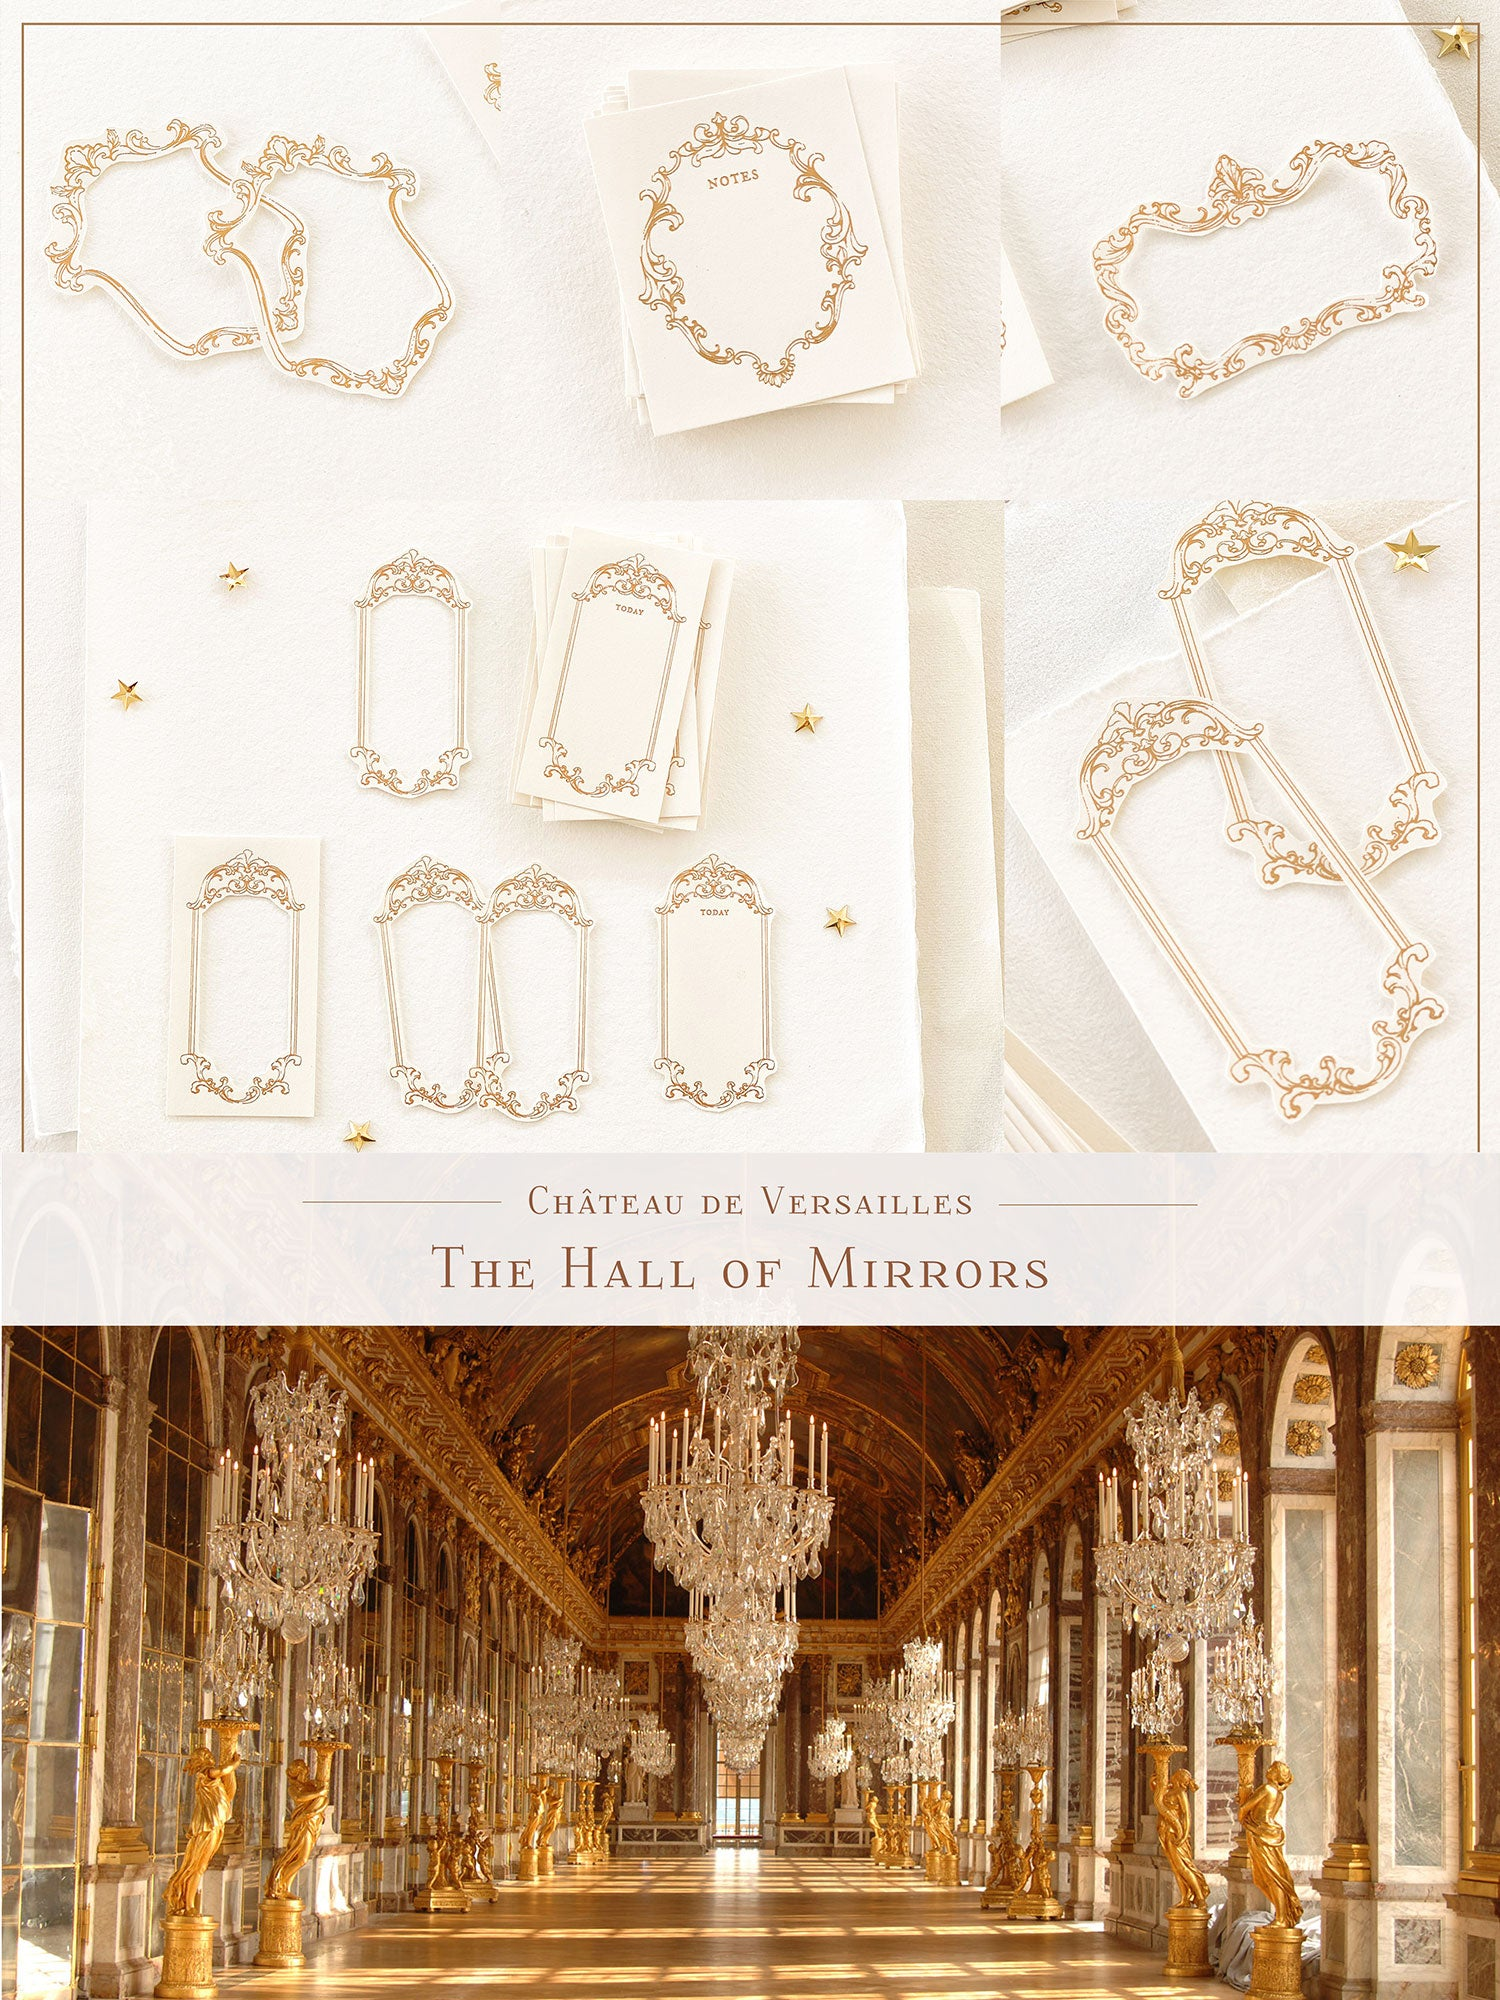 Blinks of Life - Hall of Mirrors - Palace of Versailles